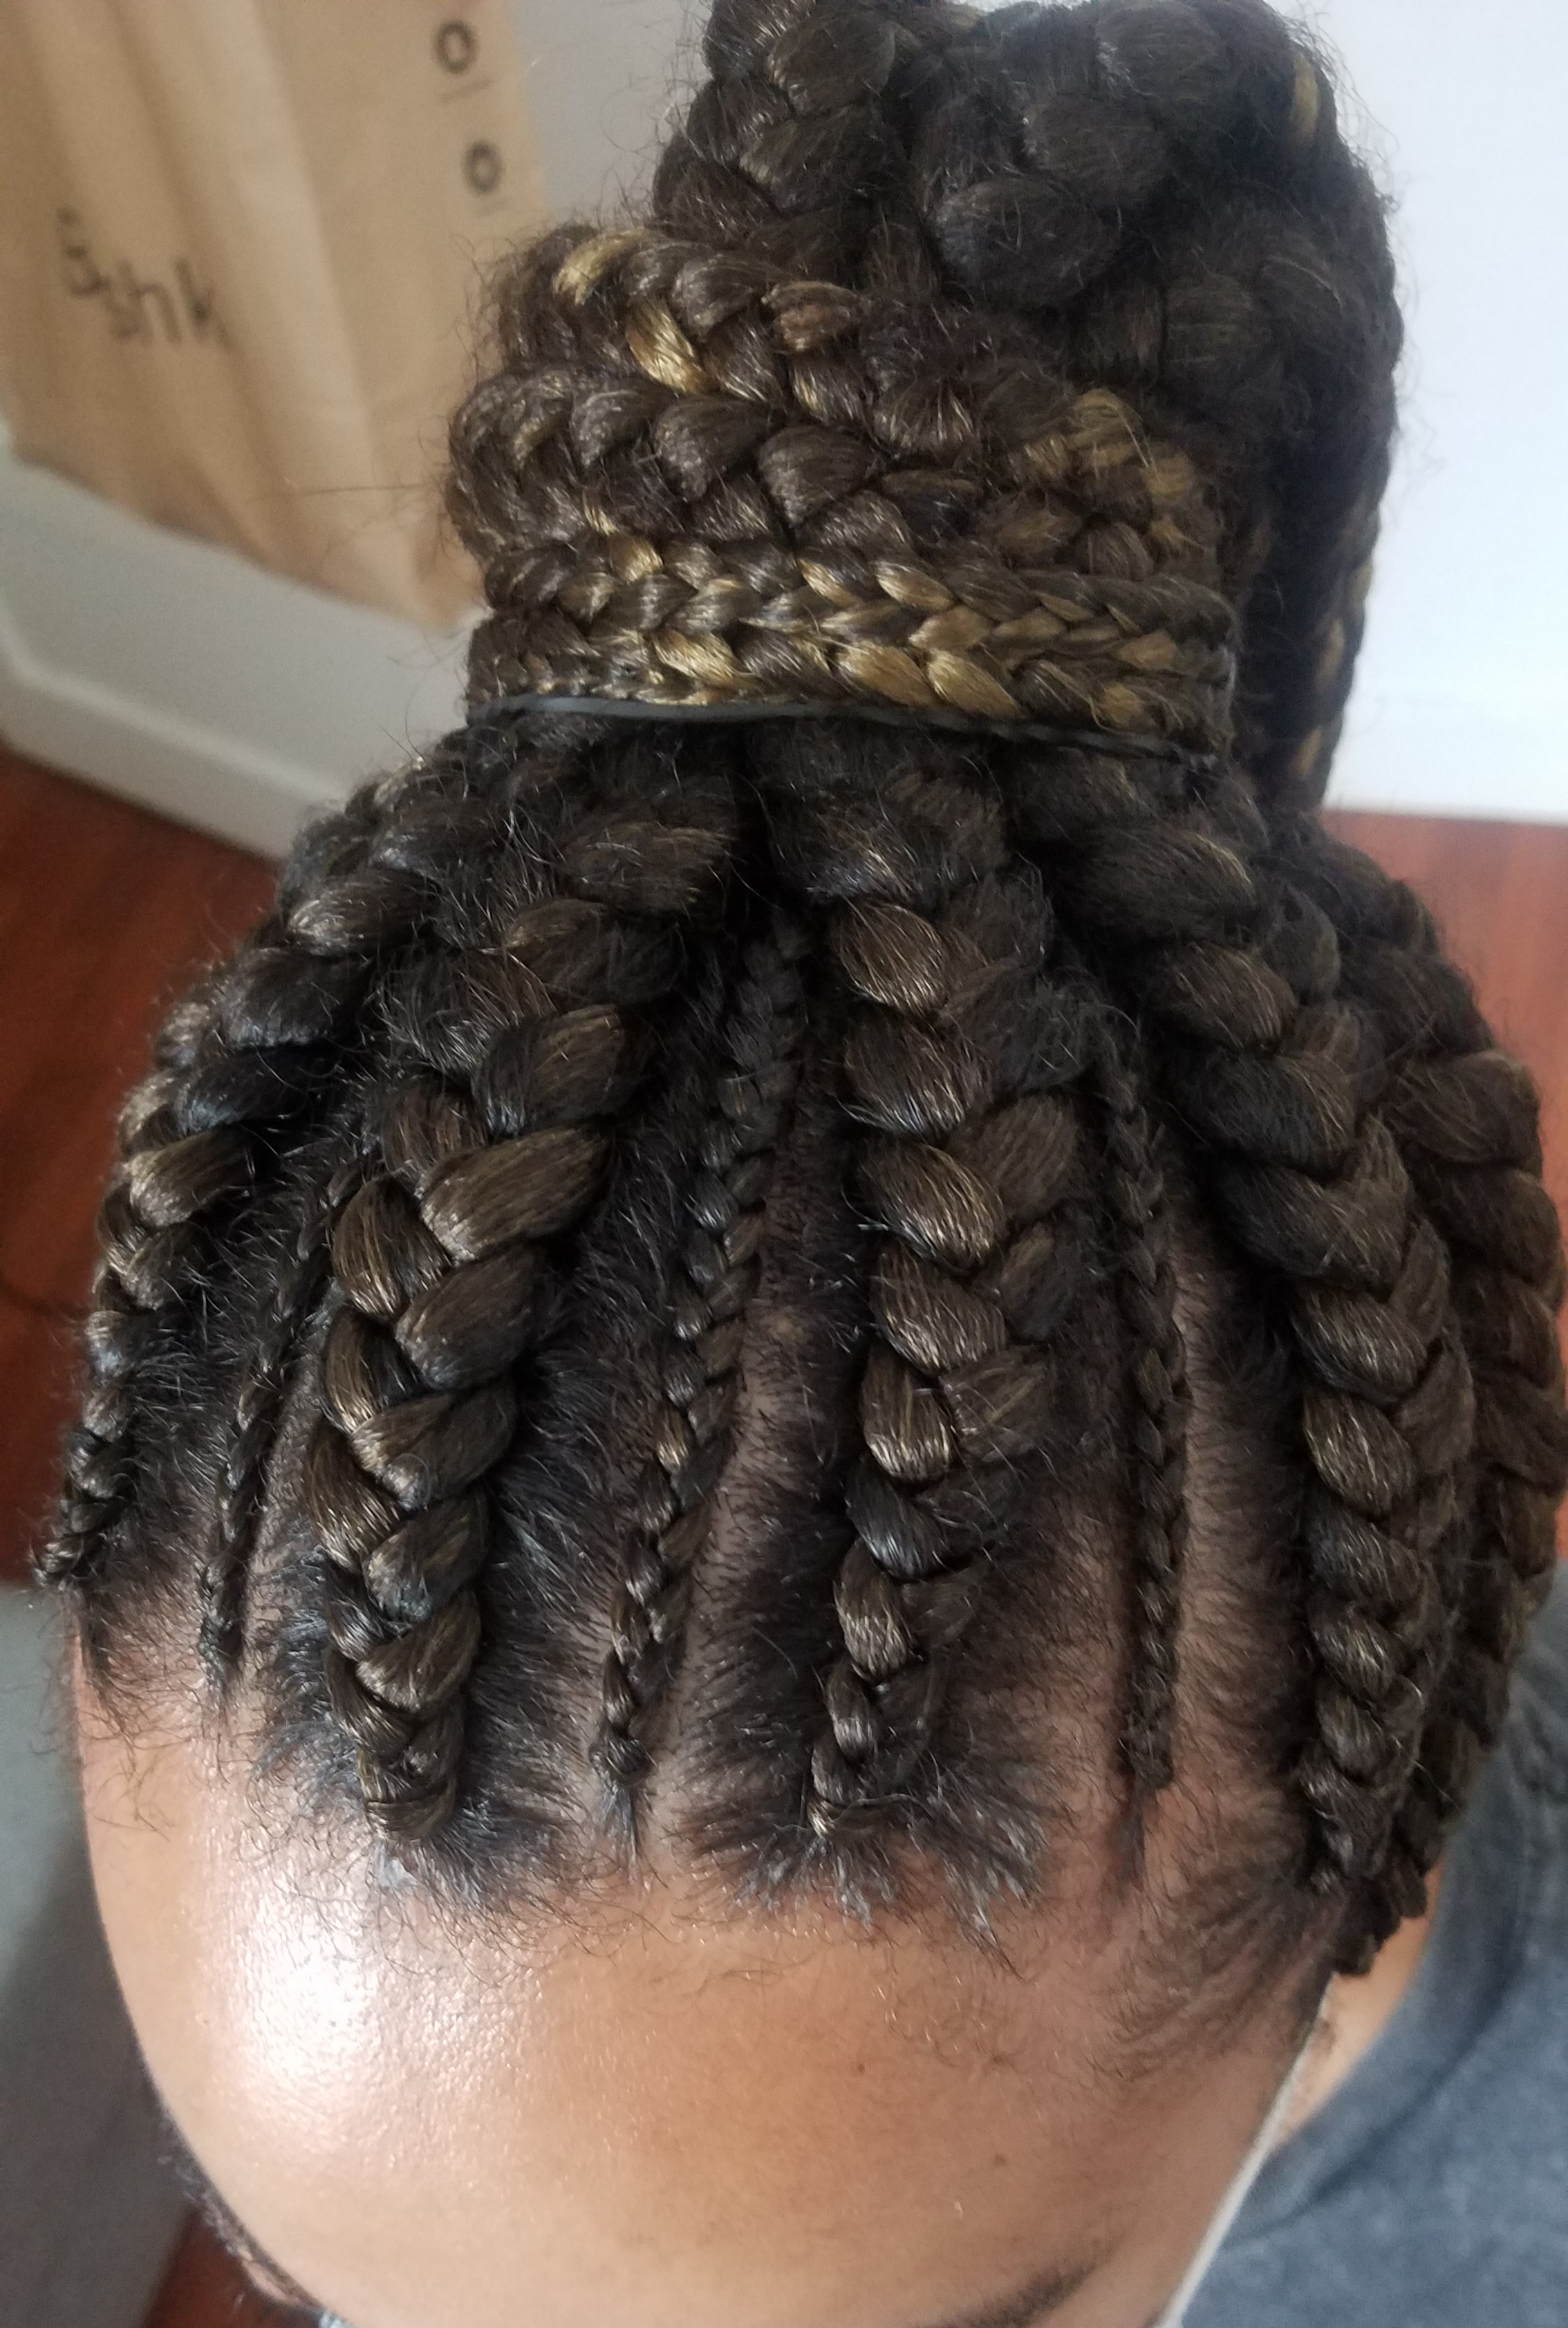 salon de coiffure afro tresse tresses box braids crochet braids vanilles tissages paris 75 77 78 91 92 93 94 95 WOXRPIVT